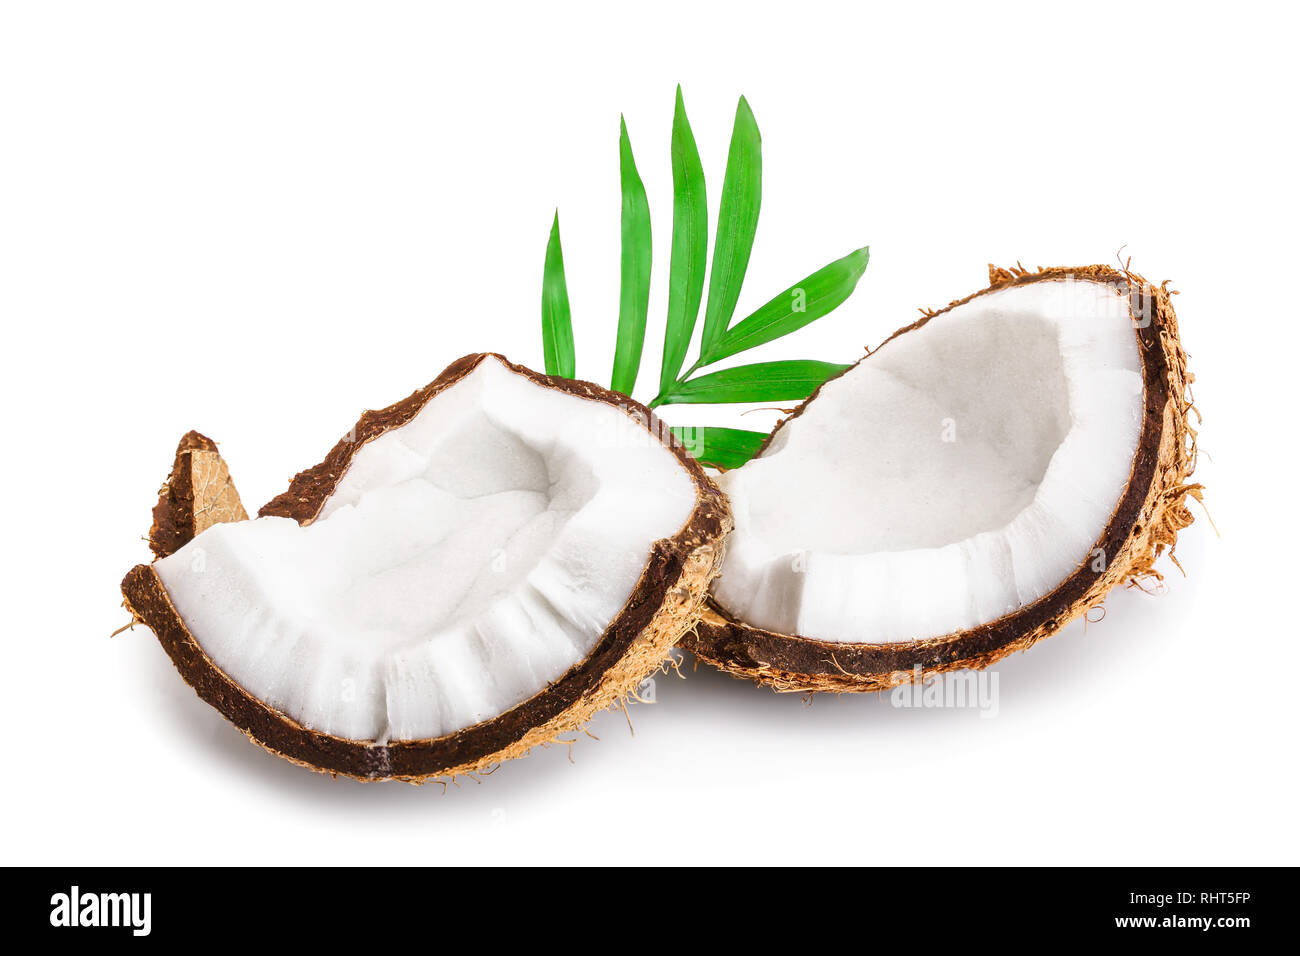 piece of coconut with leaves isolated on white background - Stock Image